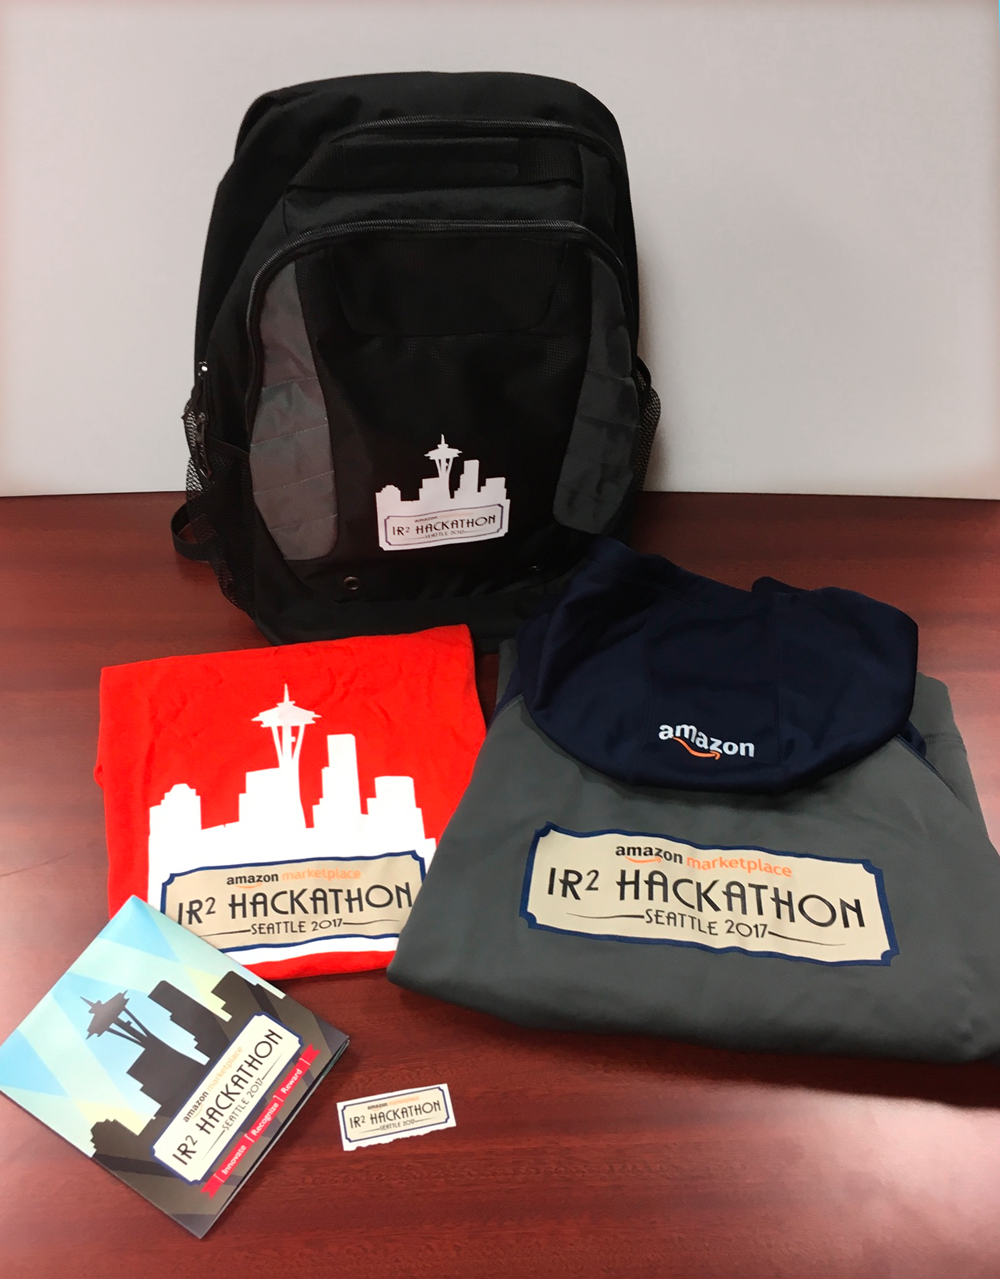 Amazon Seattle Hackathon Promo Items